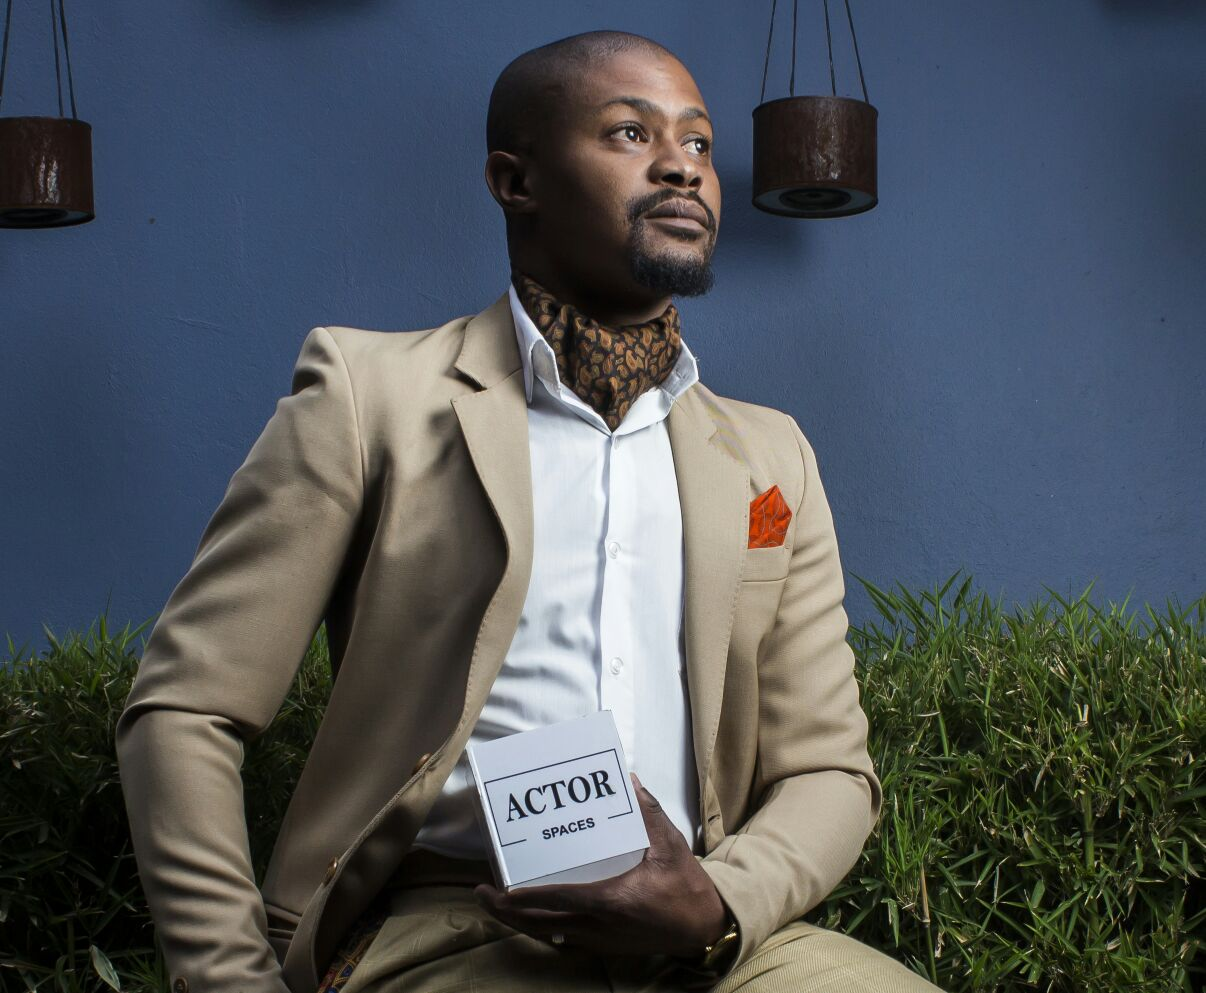 Kagiso Modupe's book is finally out